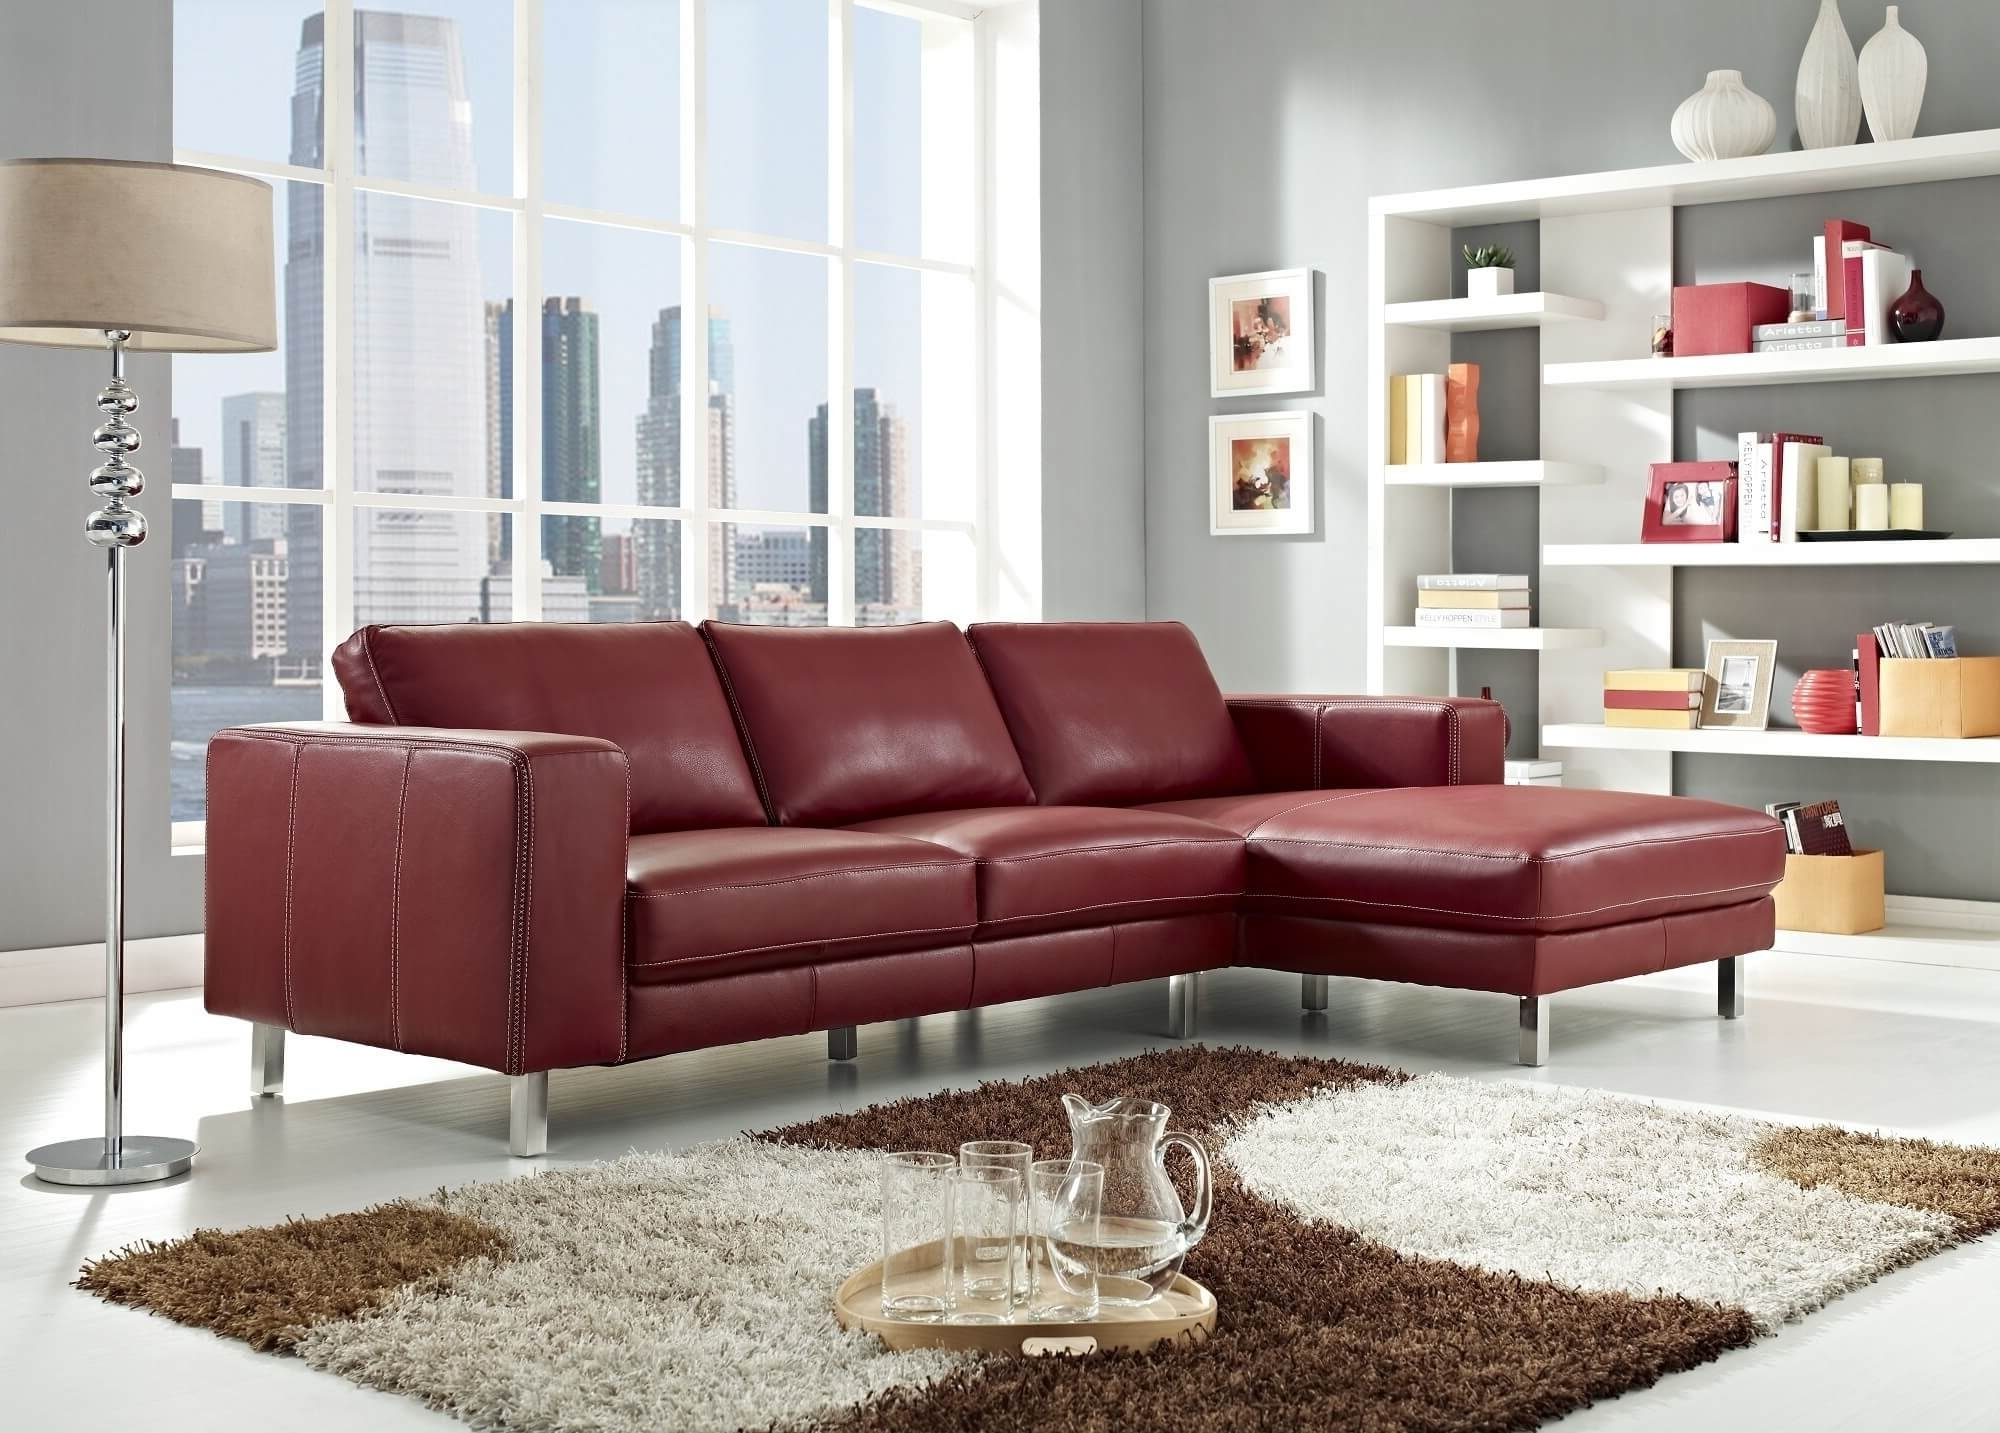 2019 Wide Seat Sectional Sofas Intended For Stylish Modern Red Sectional Sofas (View 4 of 20)